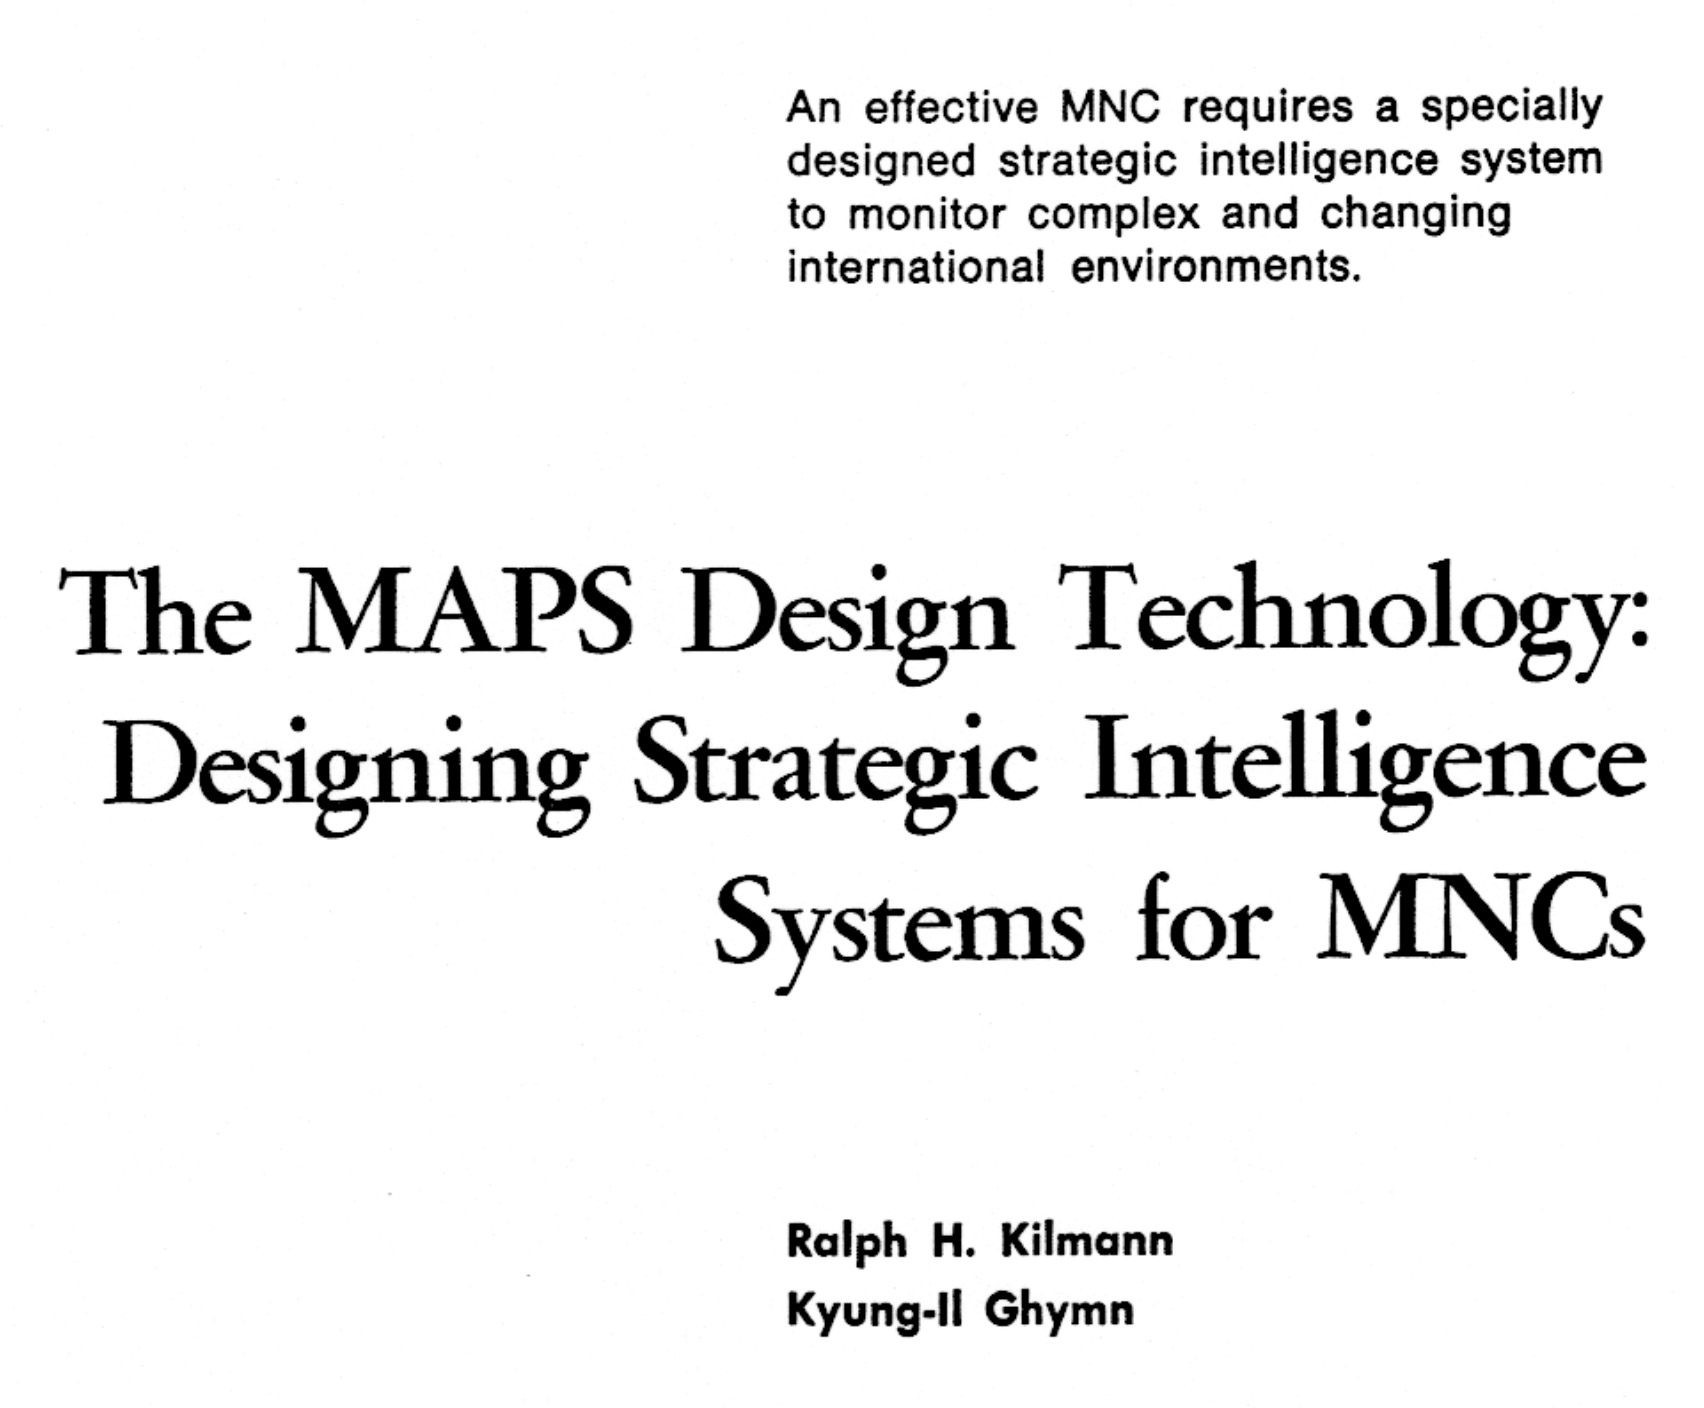 MAPS and MNCs